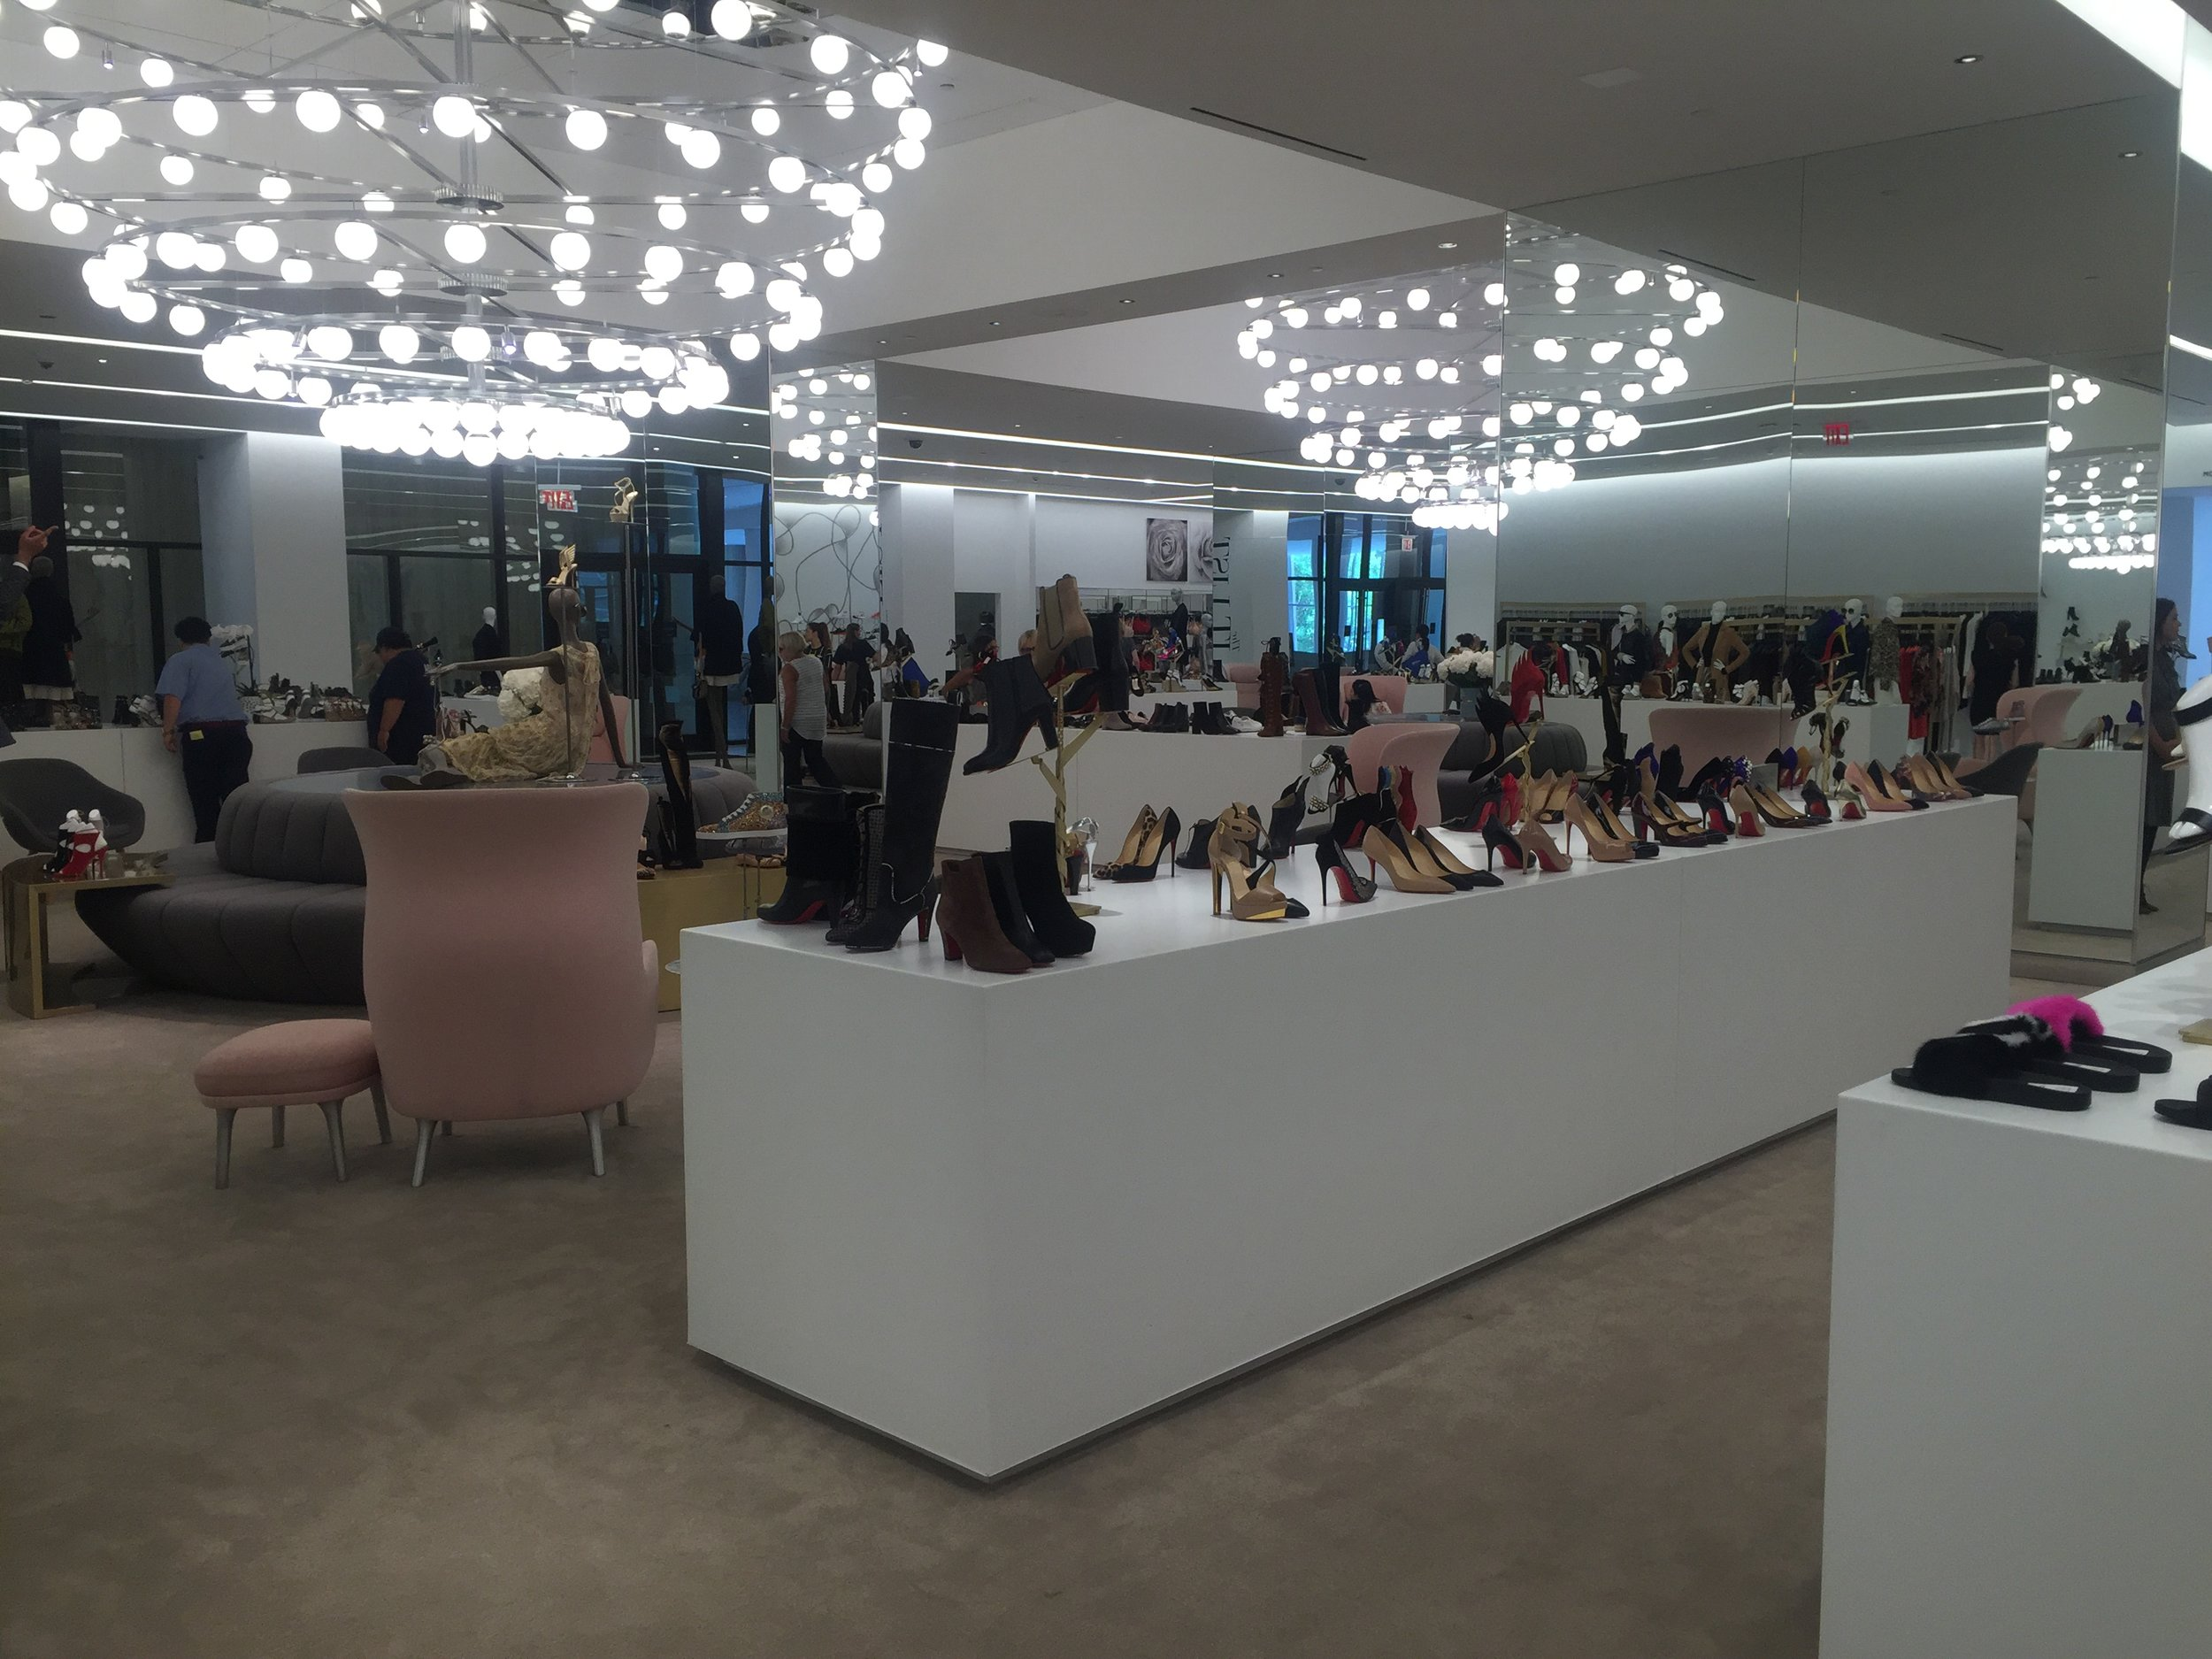 Saks' downtown shoe floor is perfect. I hope more customers enjoy it.